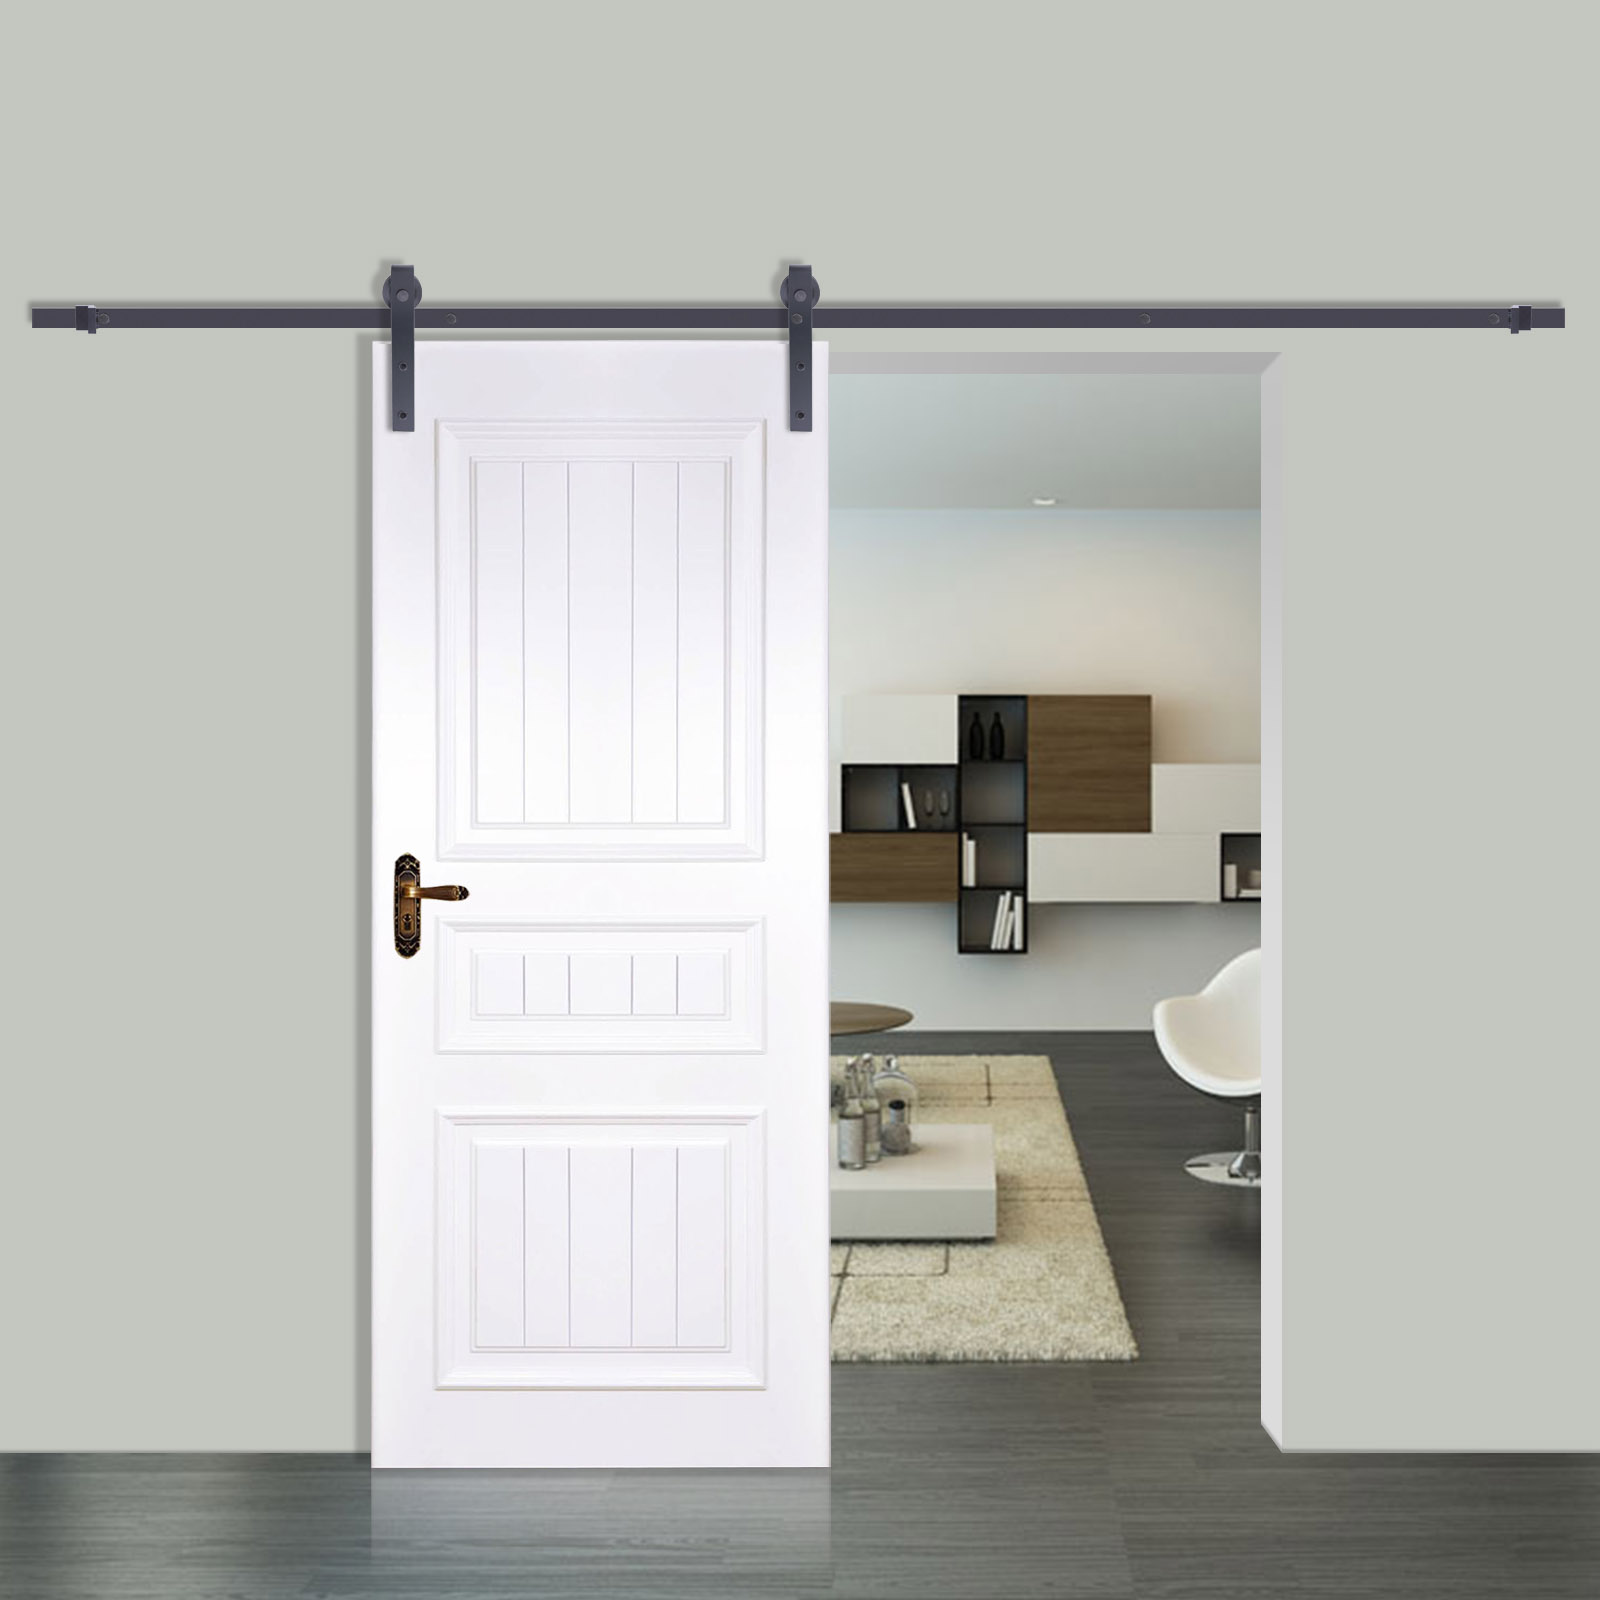 6 6 6 10 12ft Rustic Black Double Sliding Barn Door